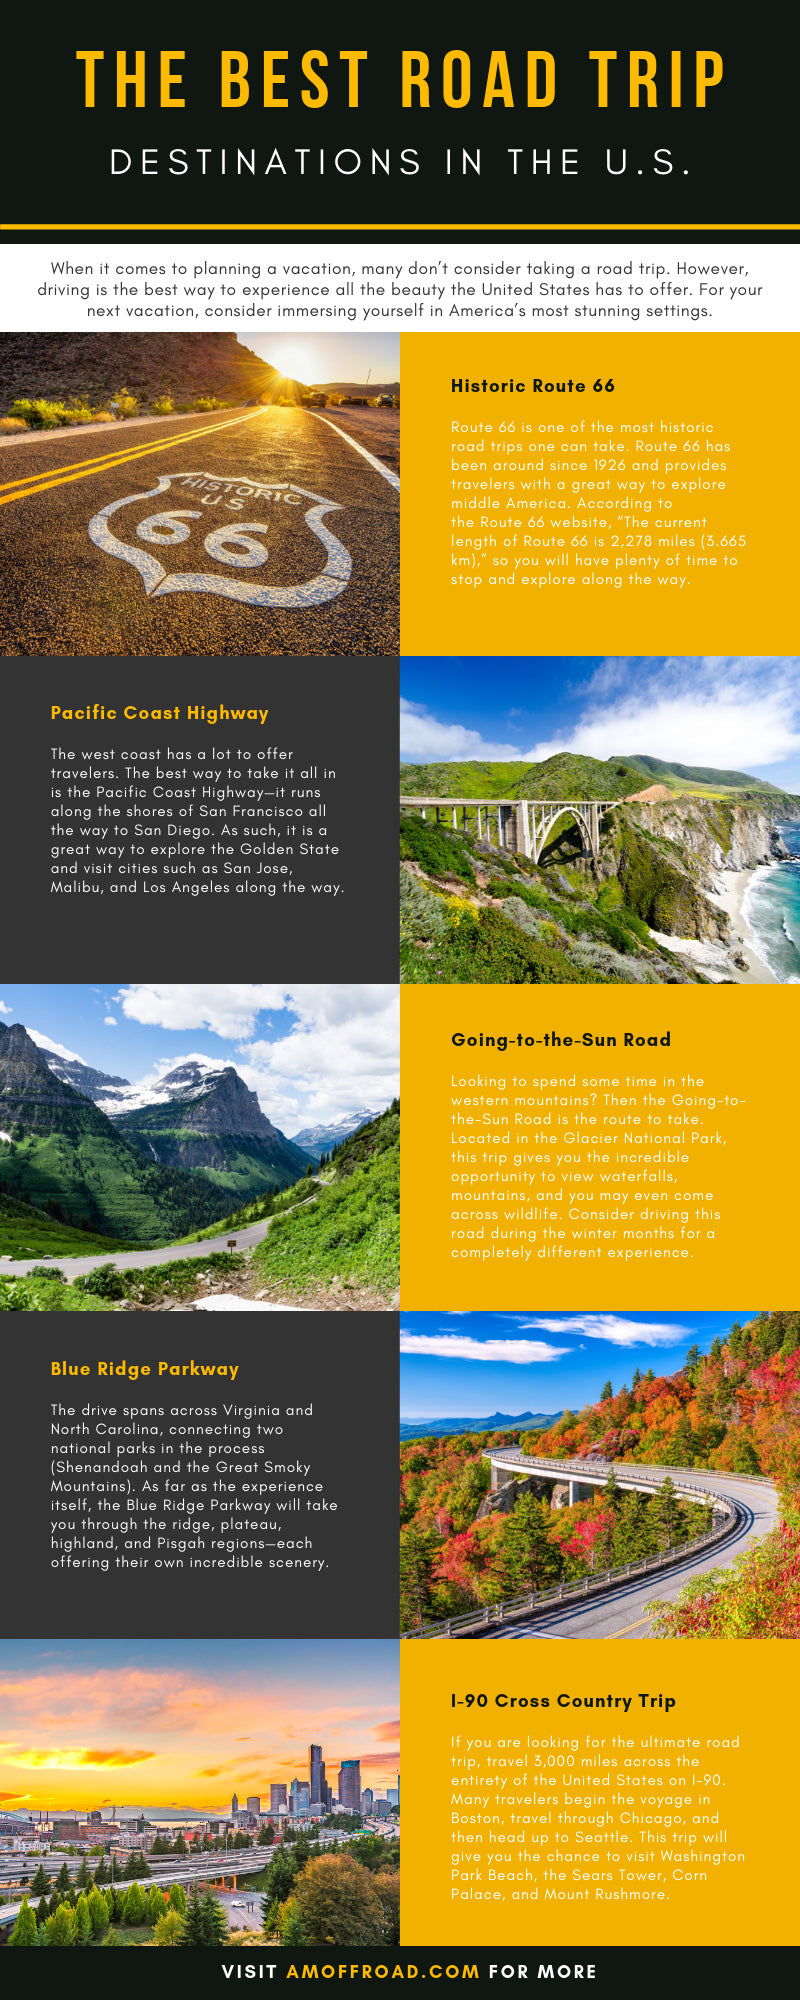 The Best Road Trip Destinations in the U.S. infographic